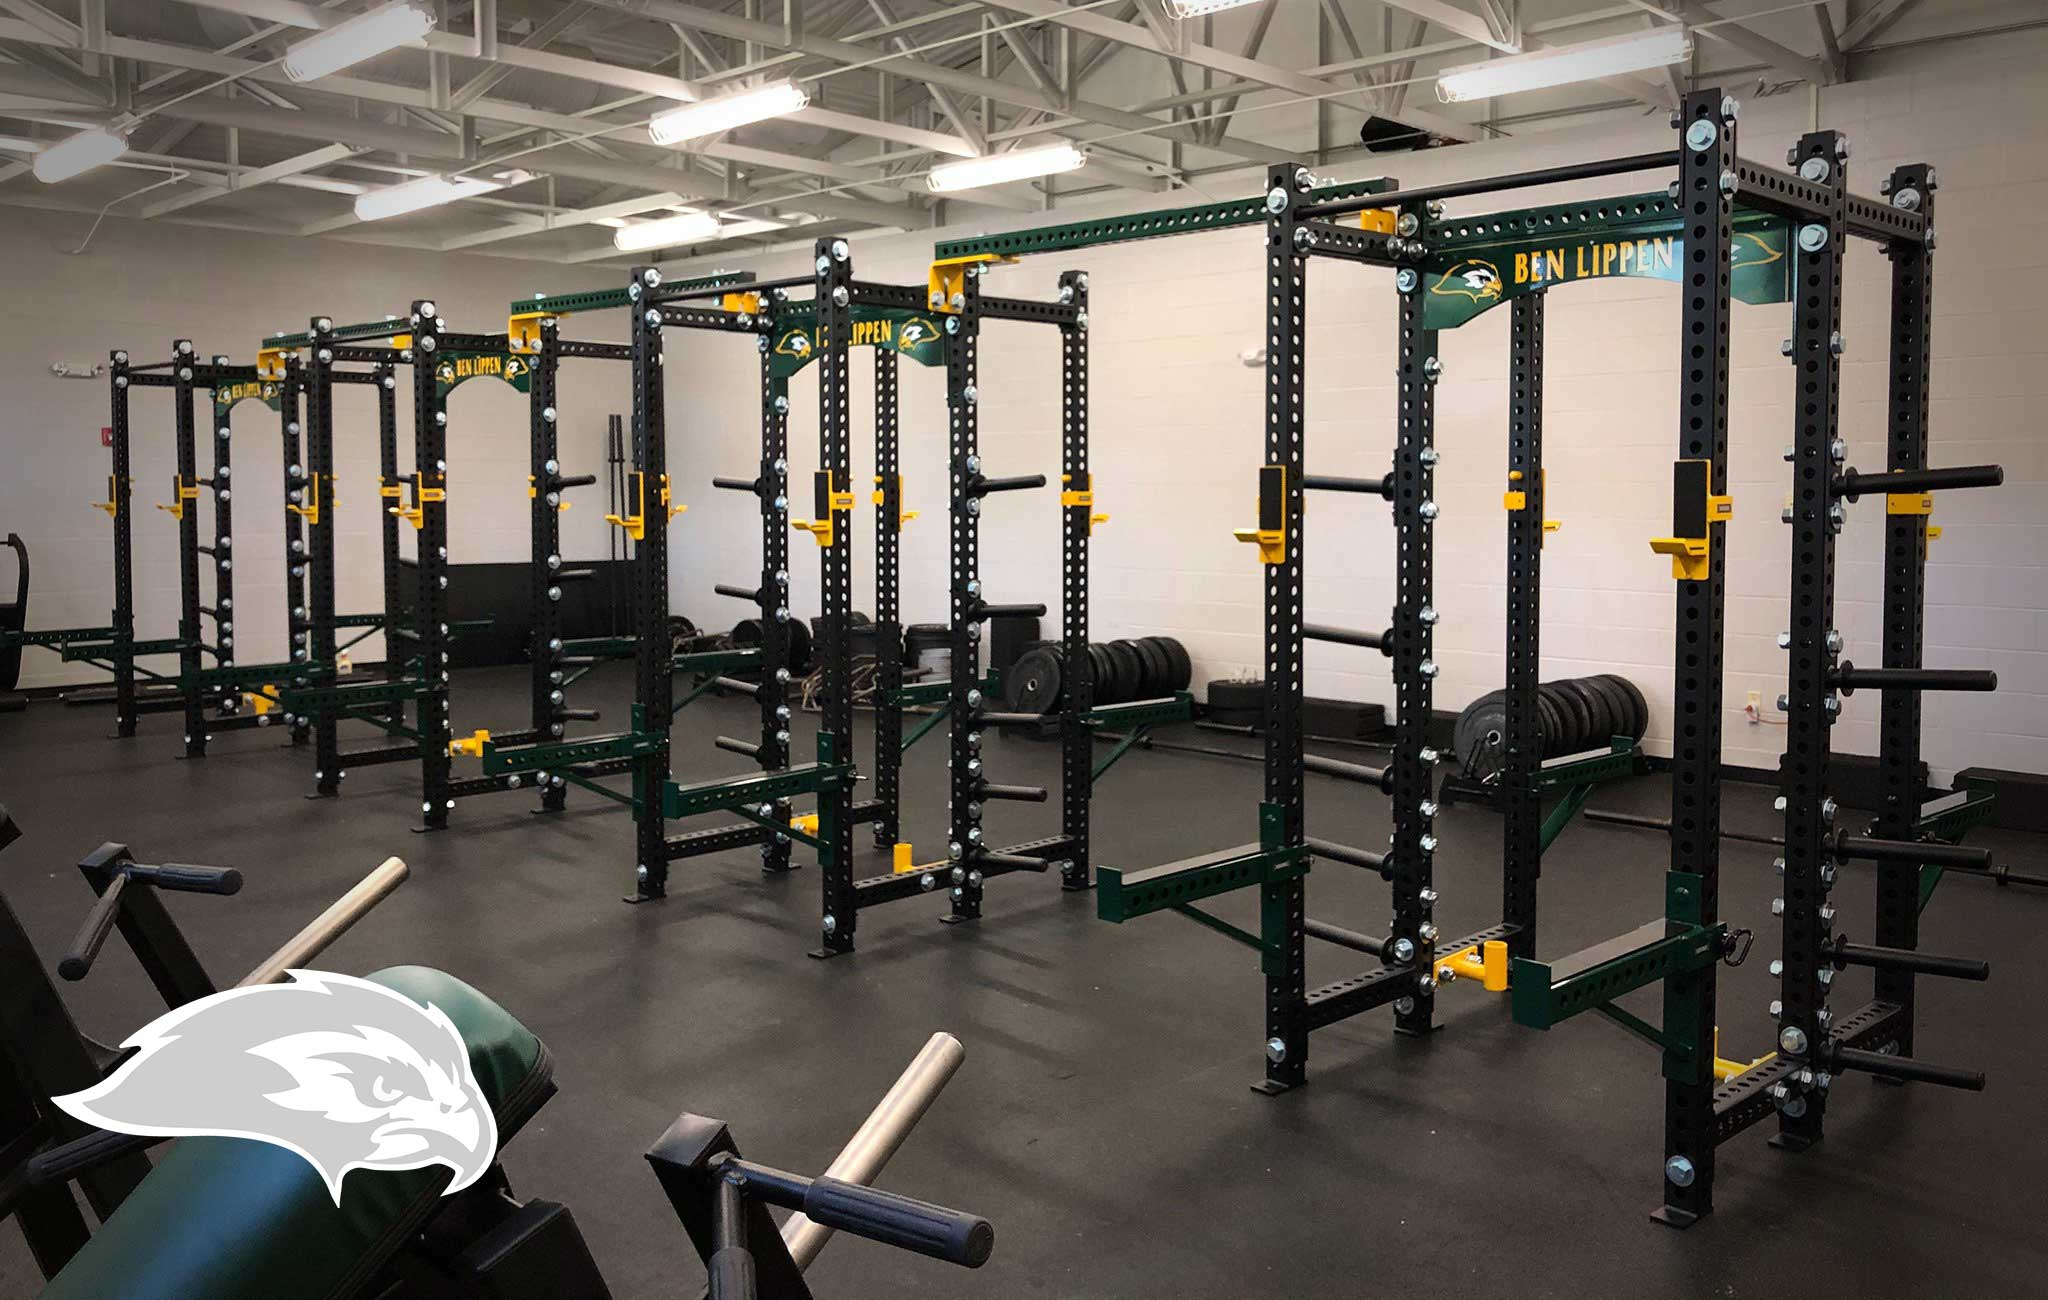 Ben Lippen Sorinex strength and conditioning facility